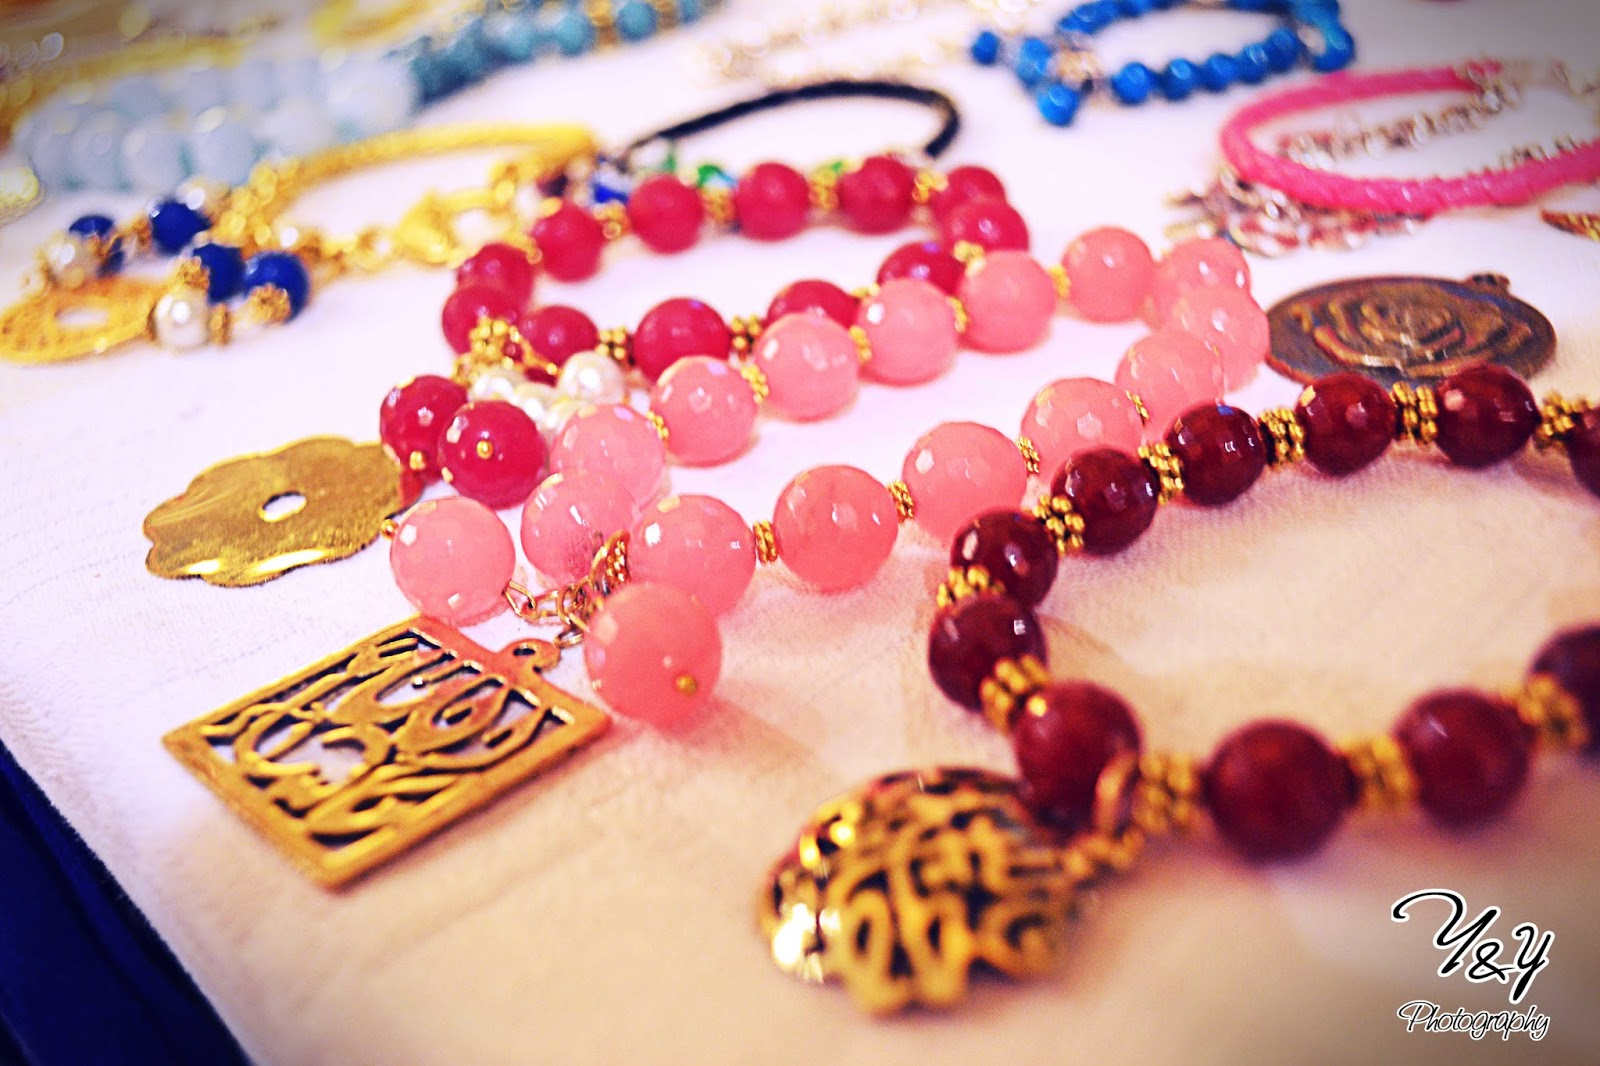 Rody Handmade Accessories   East   West Bazaar   Y Y Photography More photos  http   goo gl syqaQ